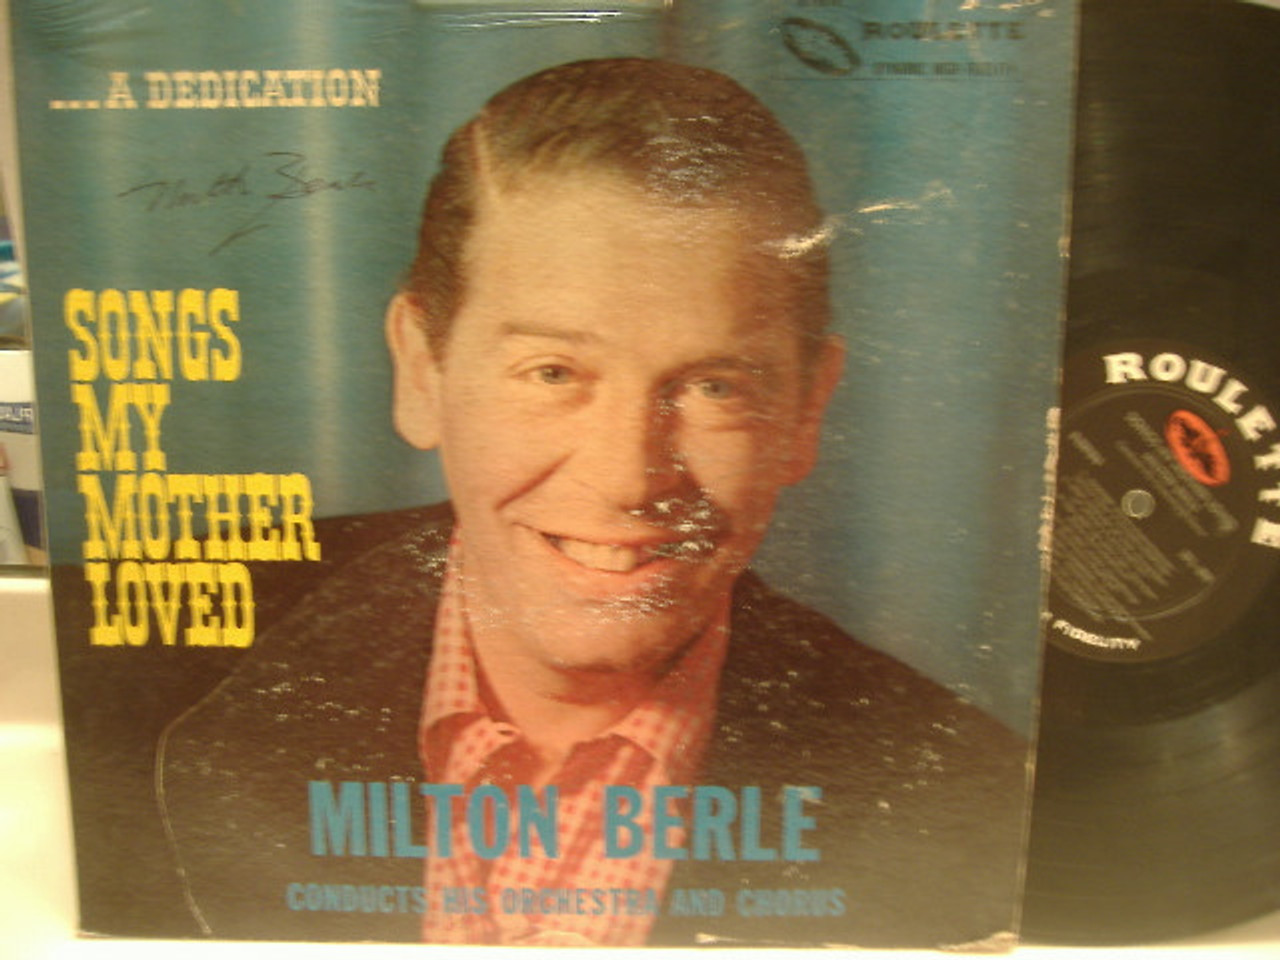 Berle, Milton LP Autograph Songs My Mother Loved